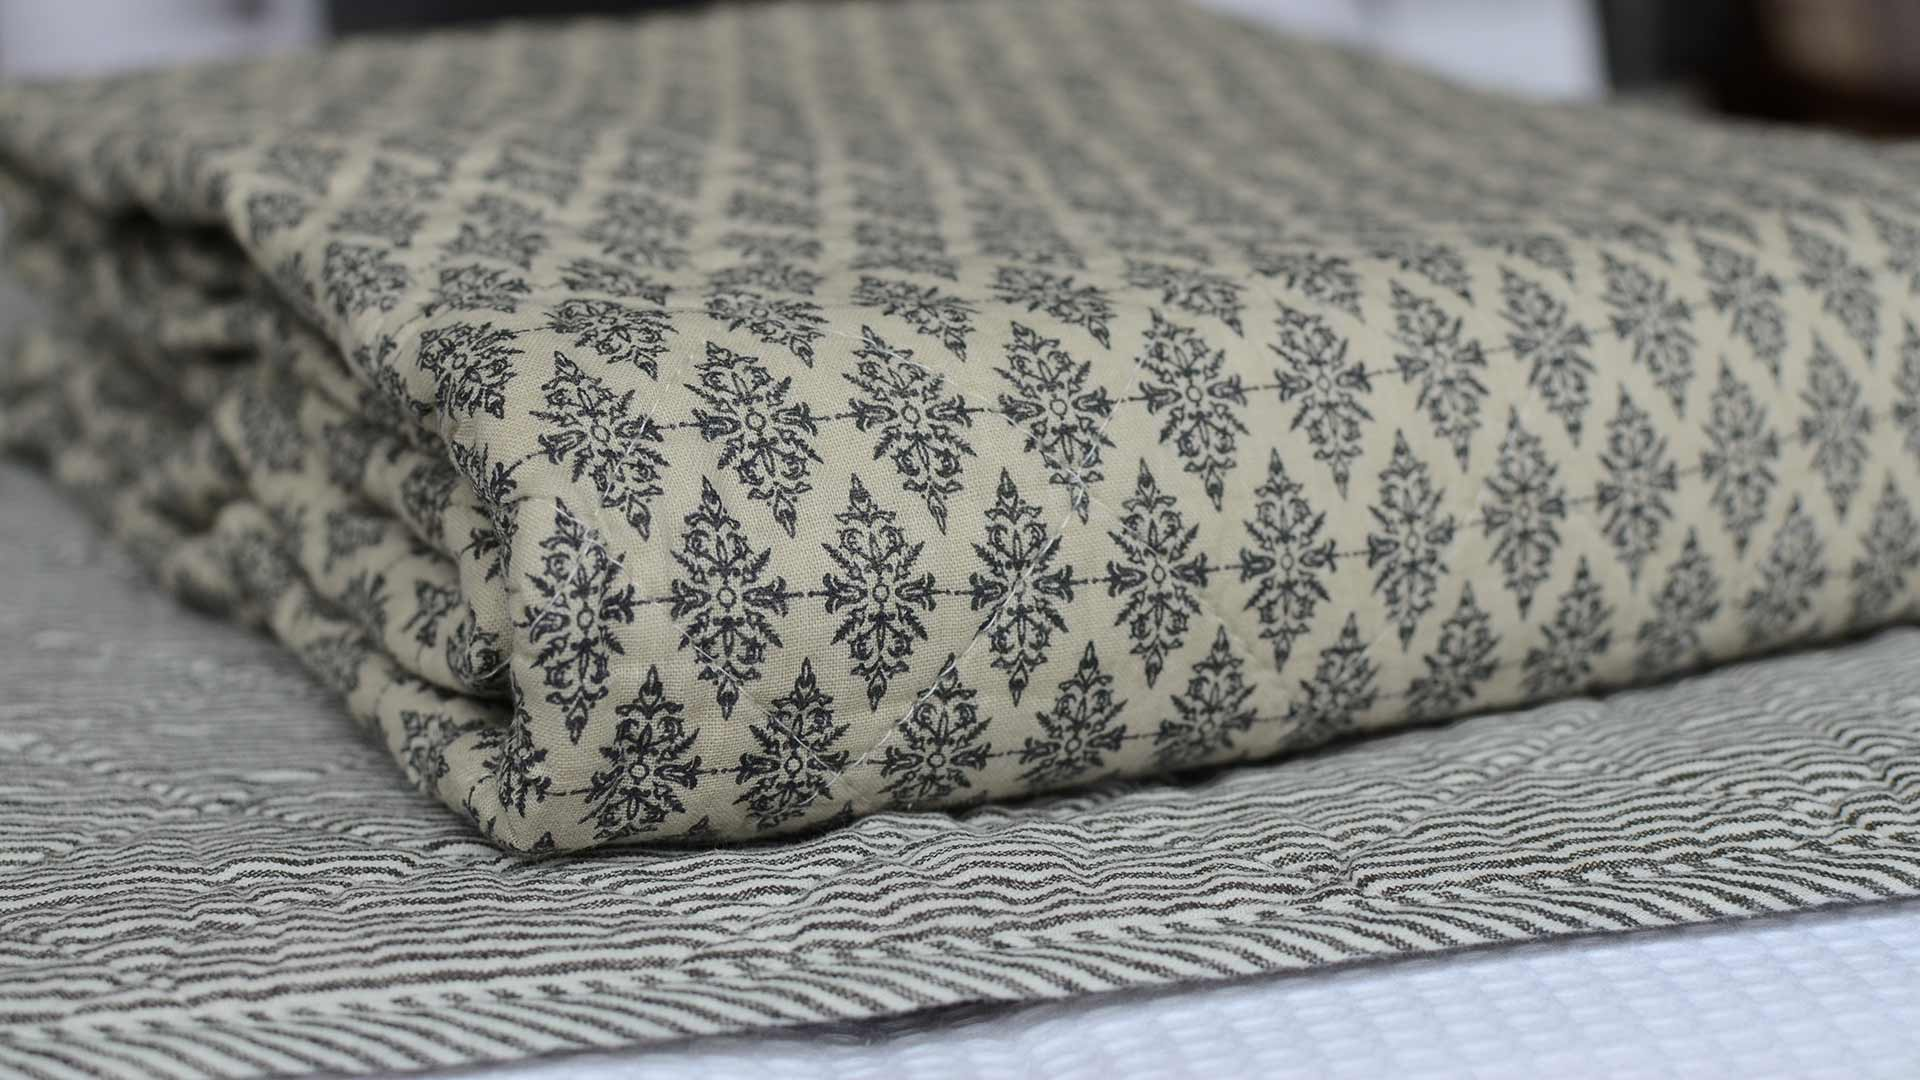 black-diamond-quilted-throw-on-striped-throw